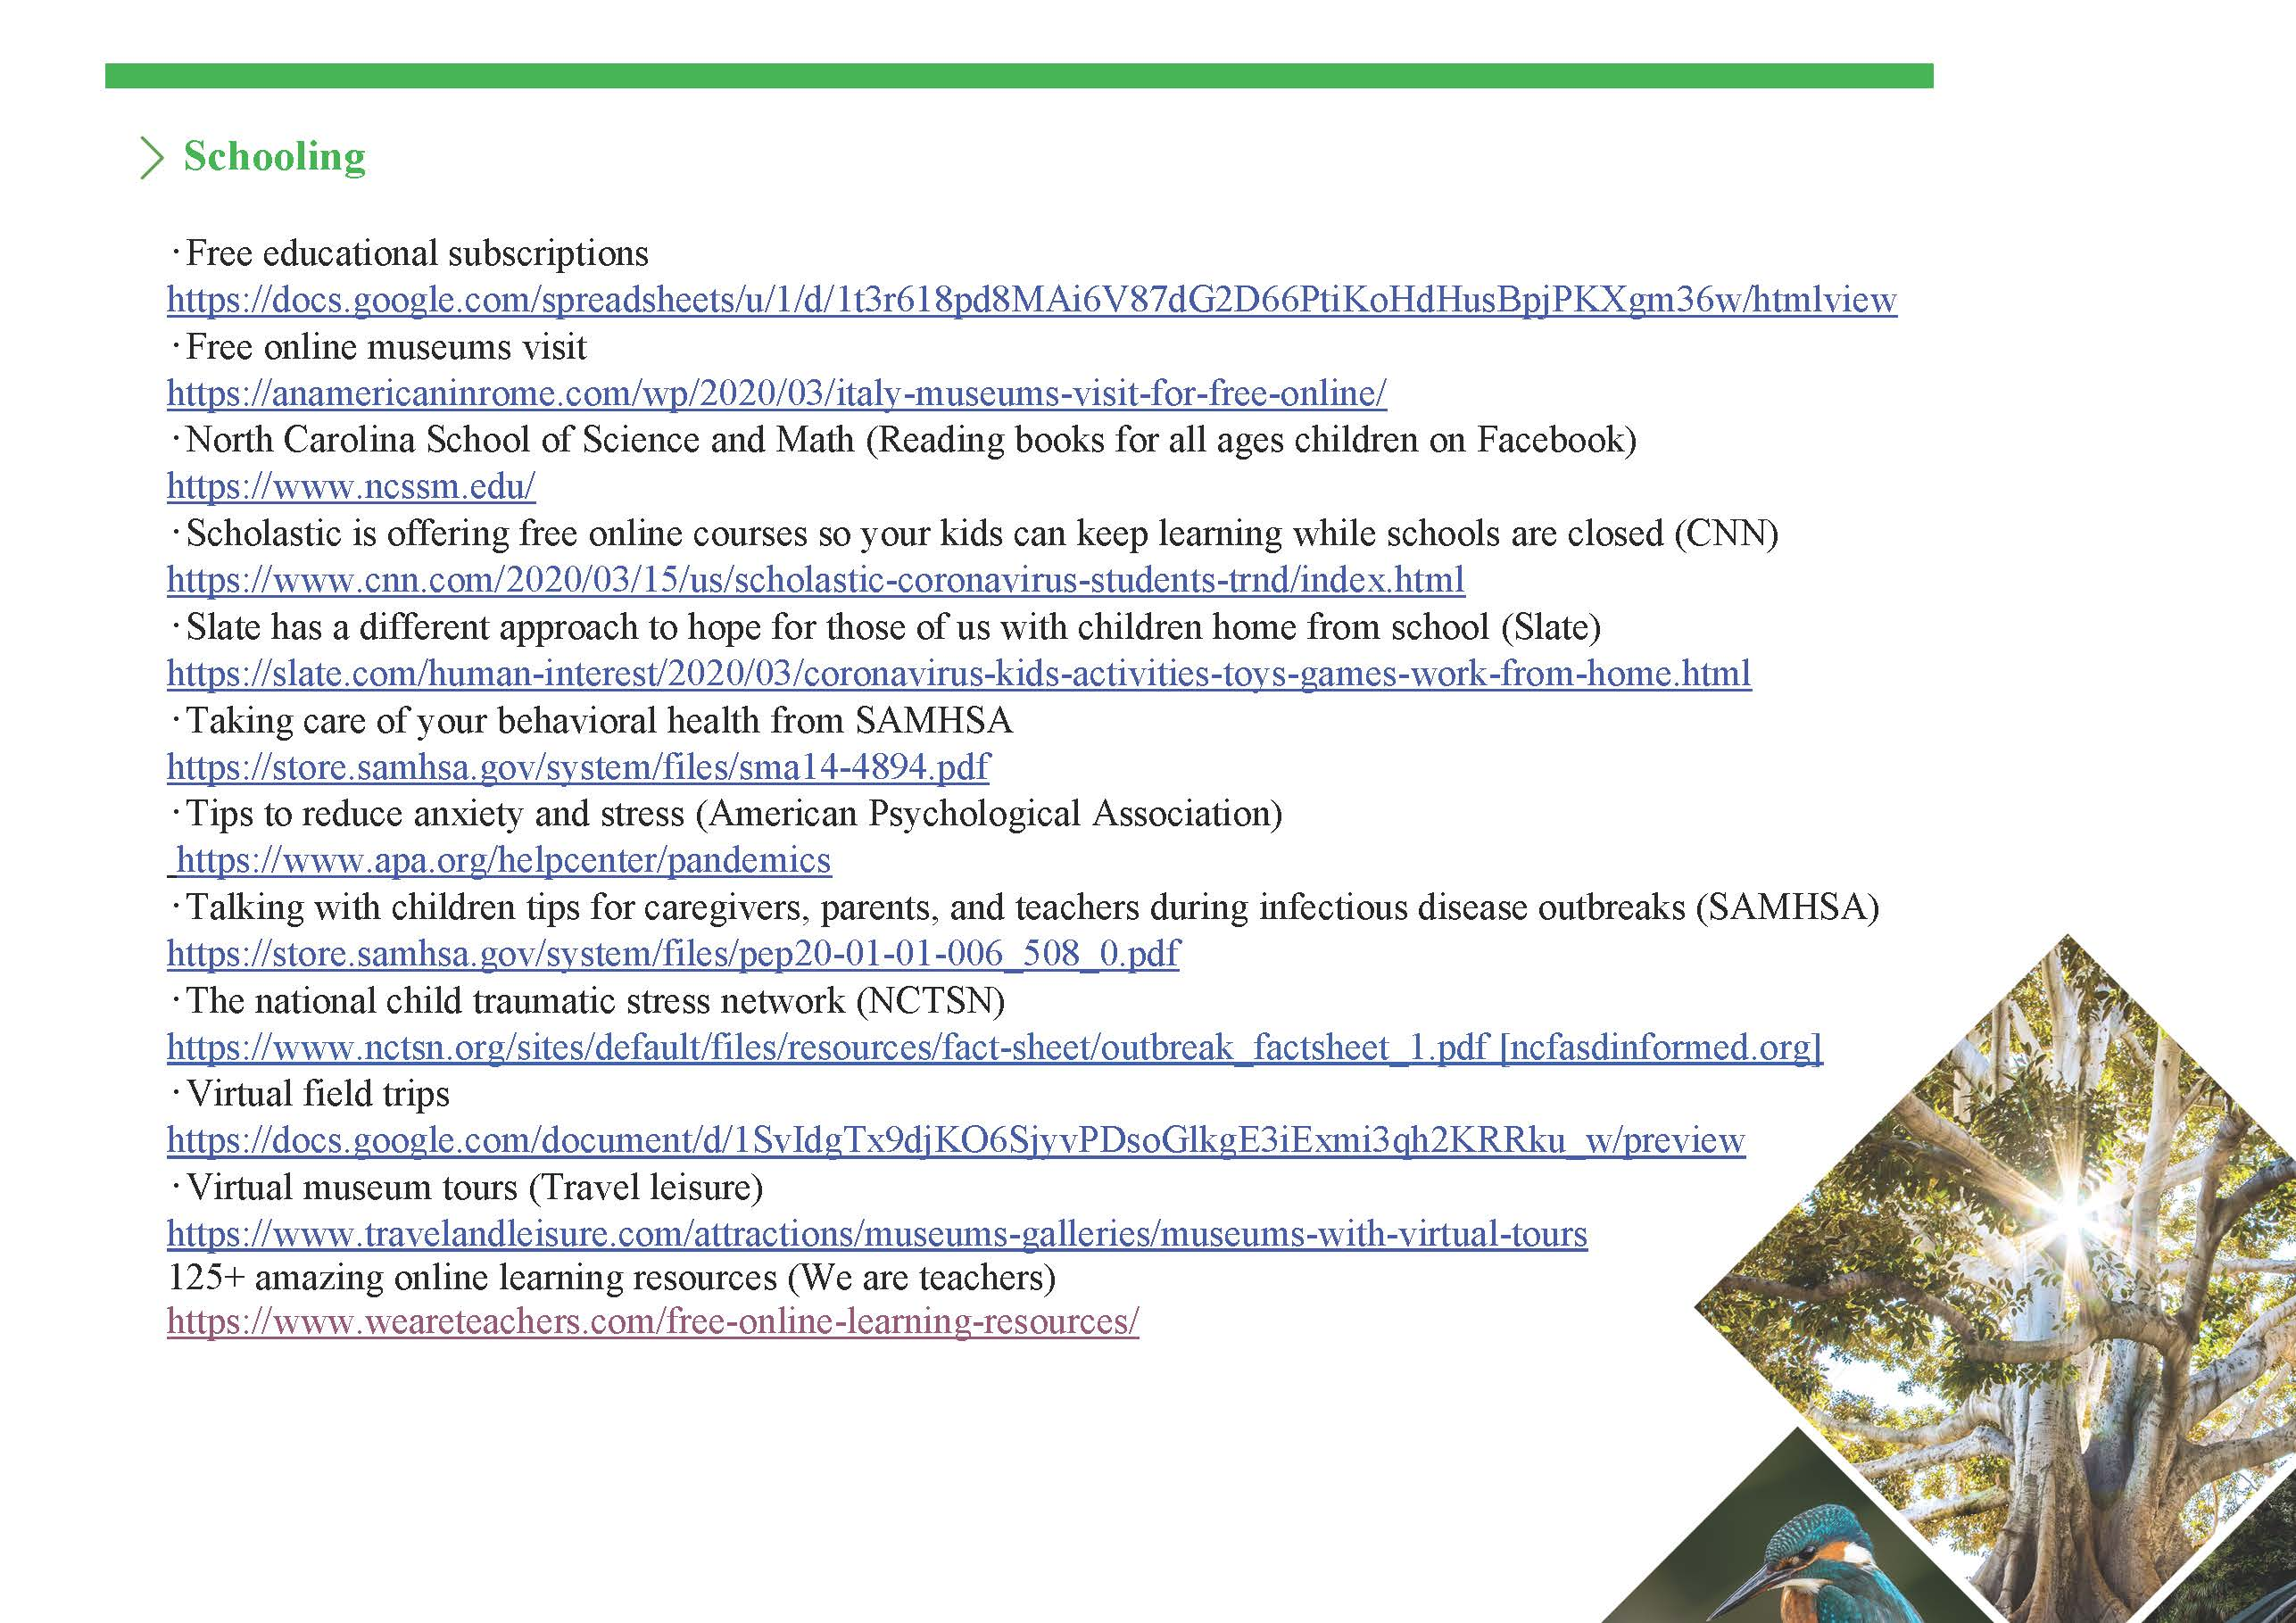 Resources page 2